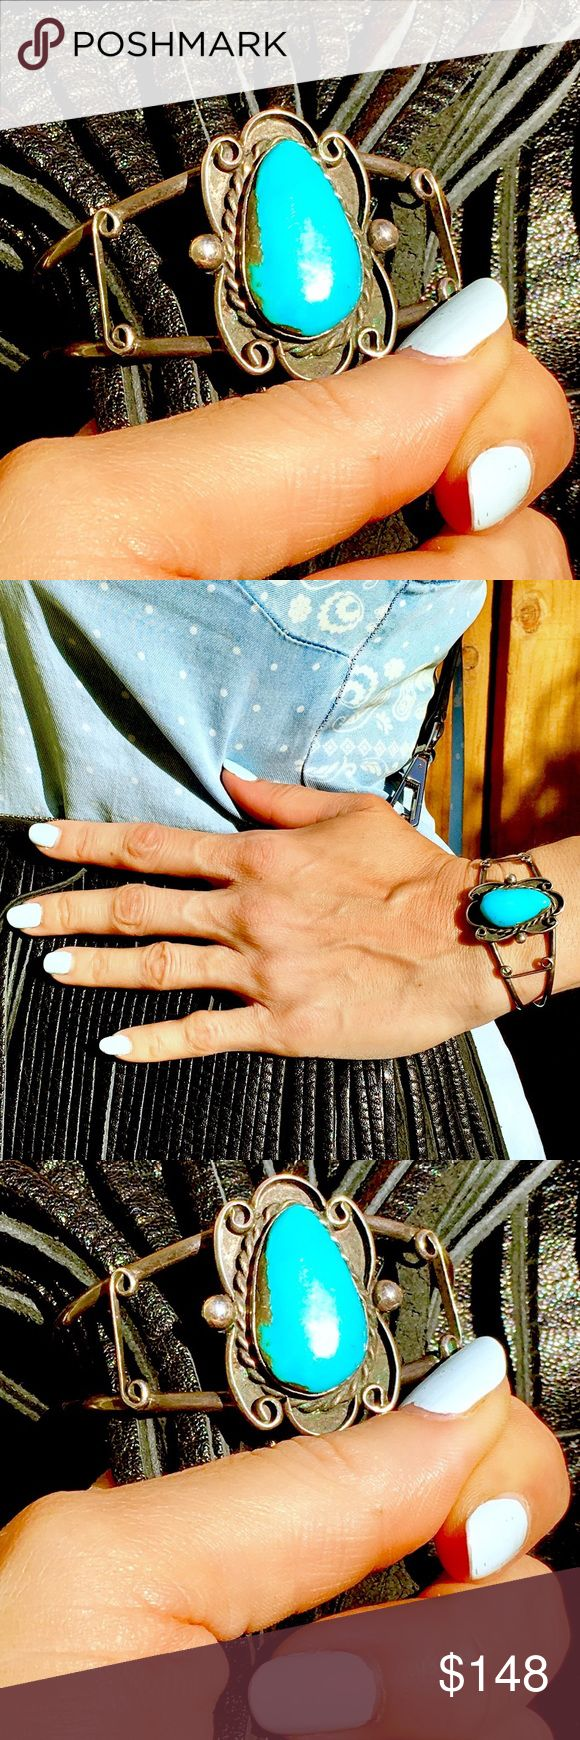 TRUE VINTAGE DEAD PAWN STERLING TURQUOISE CUFF! Sale $ firm.Here She Is,Lovely BoHo Hip~As~All~Getup~Posh~Ladies!Remarkable,Rich,Raw,& True,DEEP Vintage for Ya!🦋This LARGE Turquoise Chunk is INCREDIBLE & it takes A Long,LONG Time 2 Marinate in order 2 Create a MASTERPIECE such as This BEAUTY! Yes,Time=The Ingredient.Much Time Must Pass,with *Loving Preservation* 2 Create This GORGEOUS,MOUTHWATERINGLY RICH & NATURAL AGED PATINA!Add RARE,No Longer Mined,SHOCKINGLY VIVID SLEEPING BEAUTY…